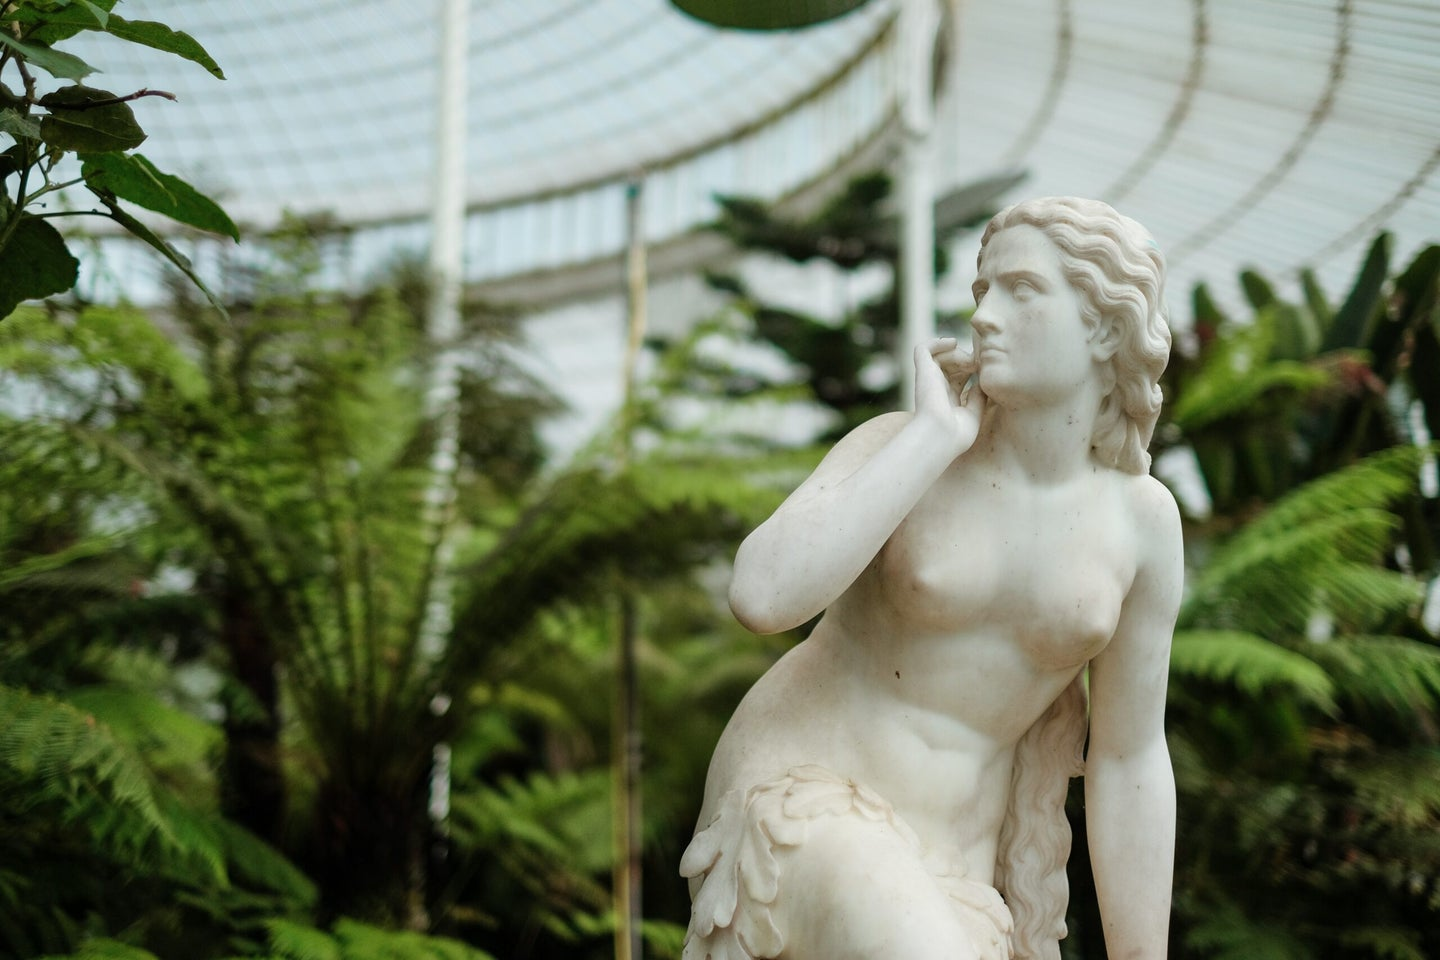 Naked woman statue in garden.